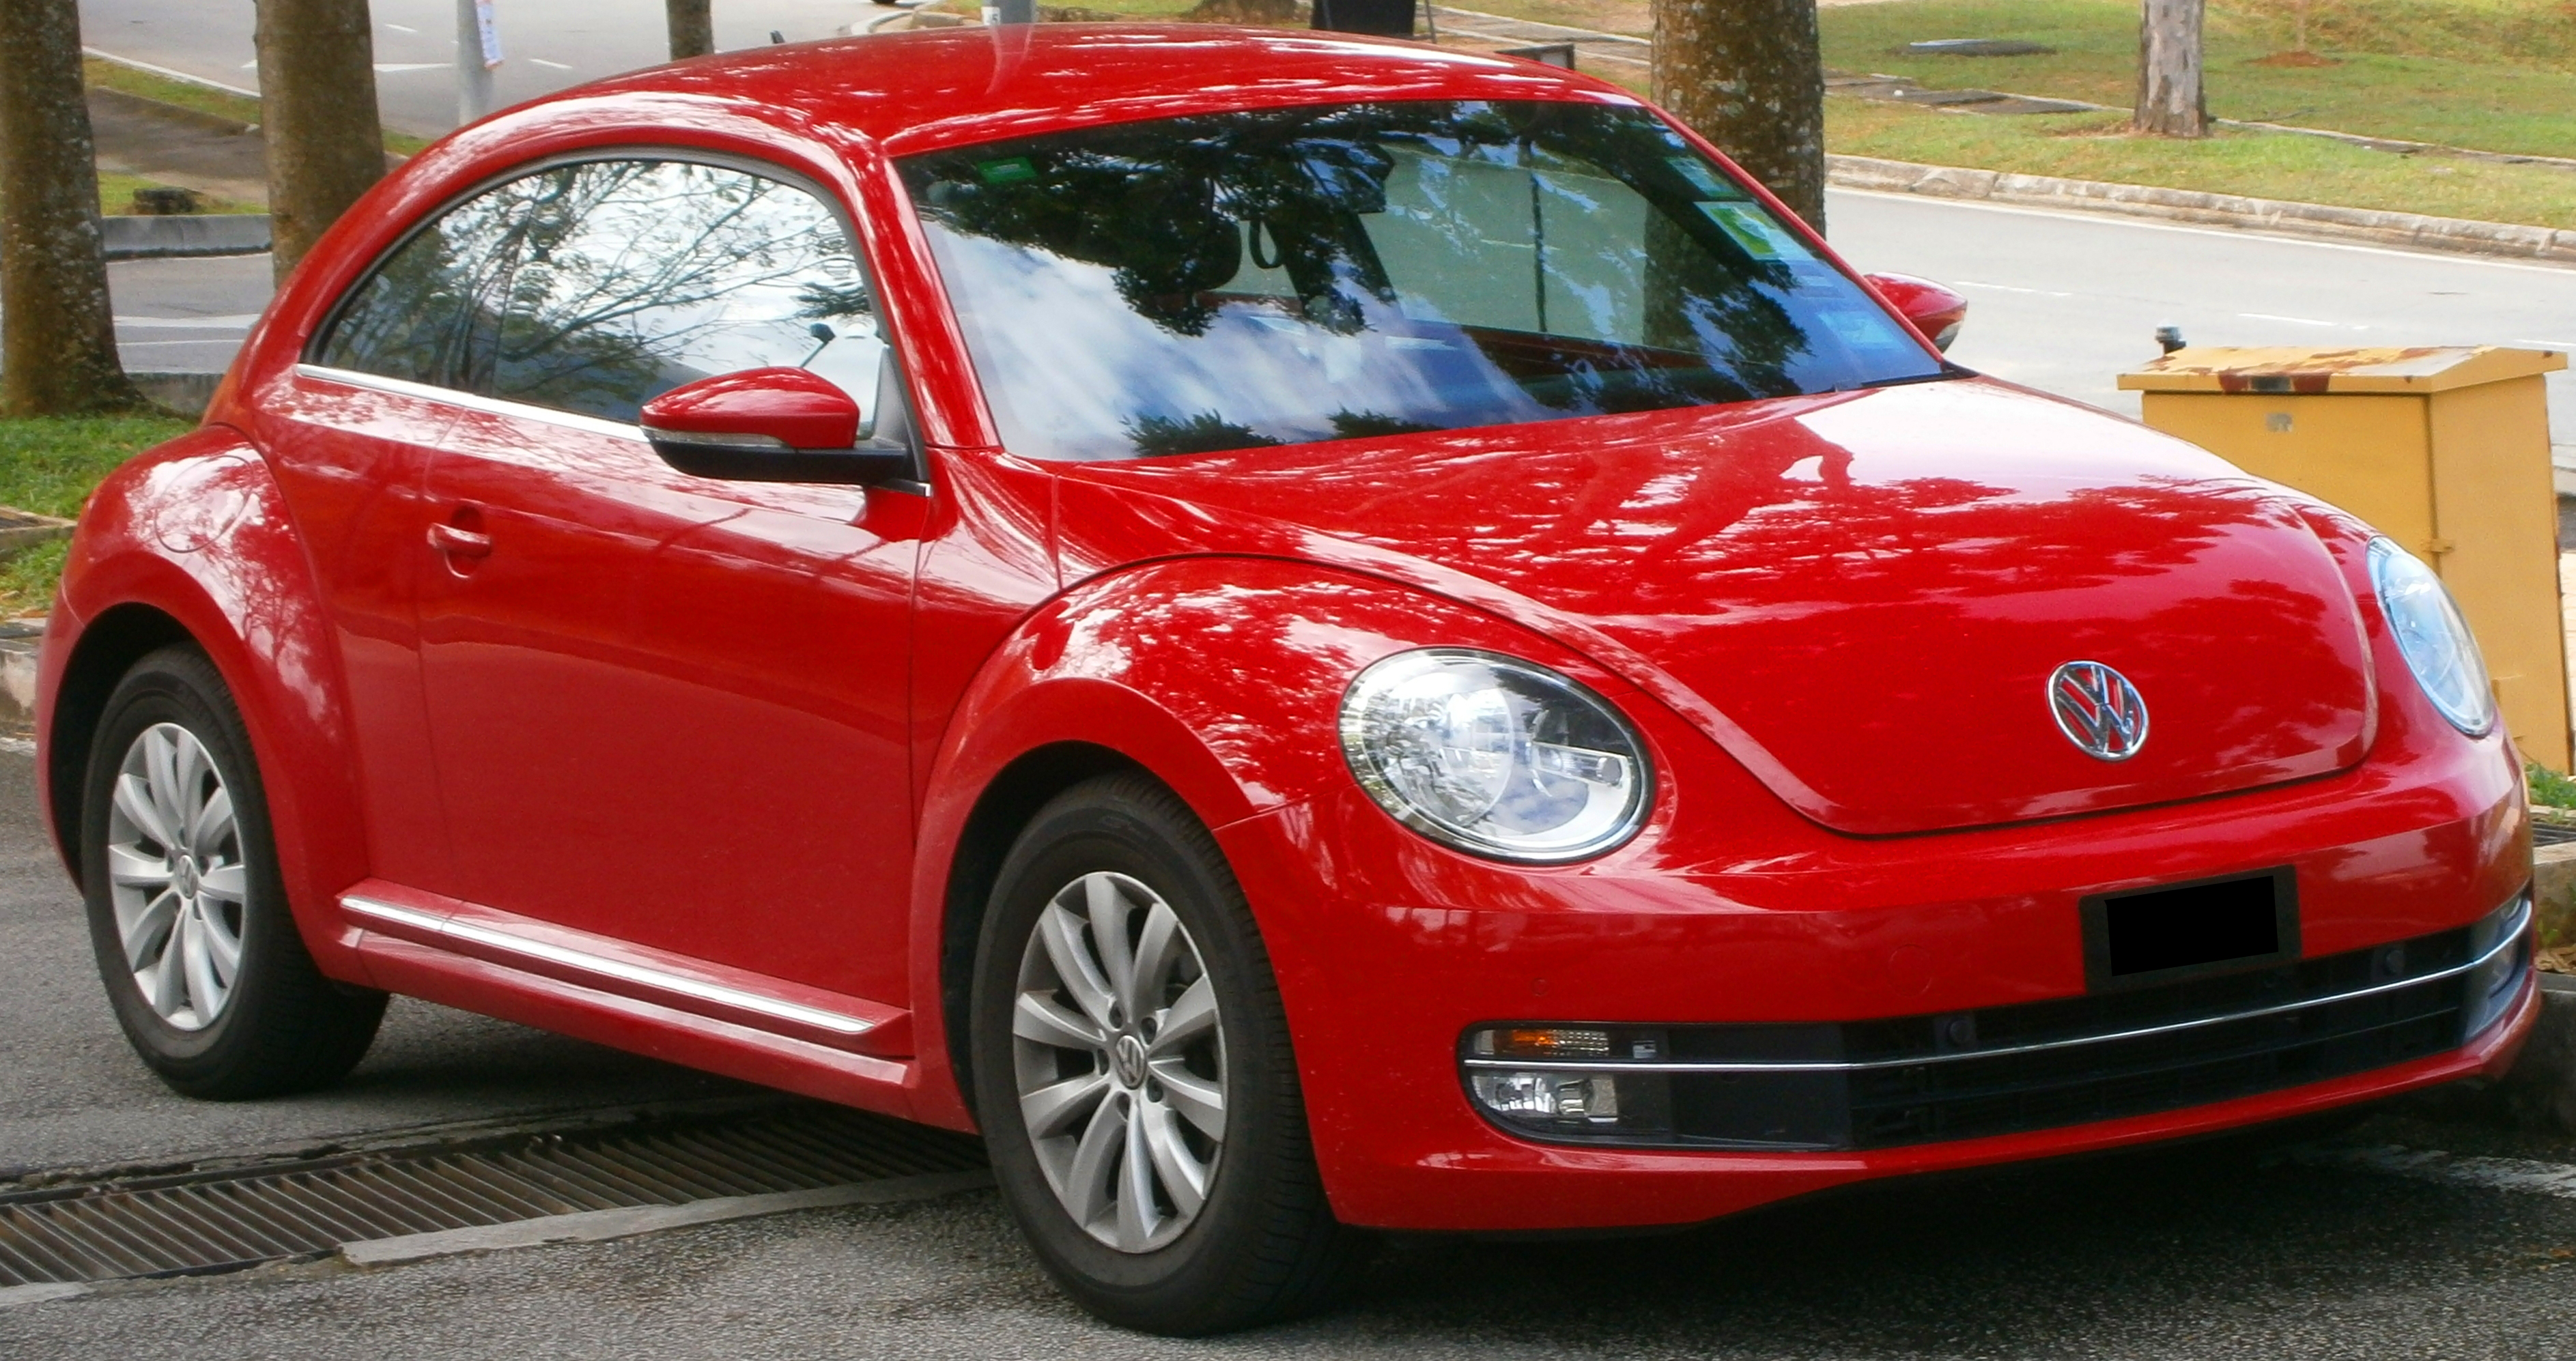 pixycars the convertible a red volkswagen car everyone beetle for